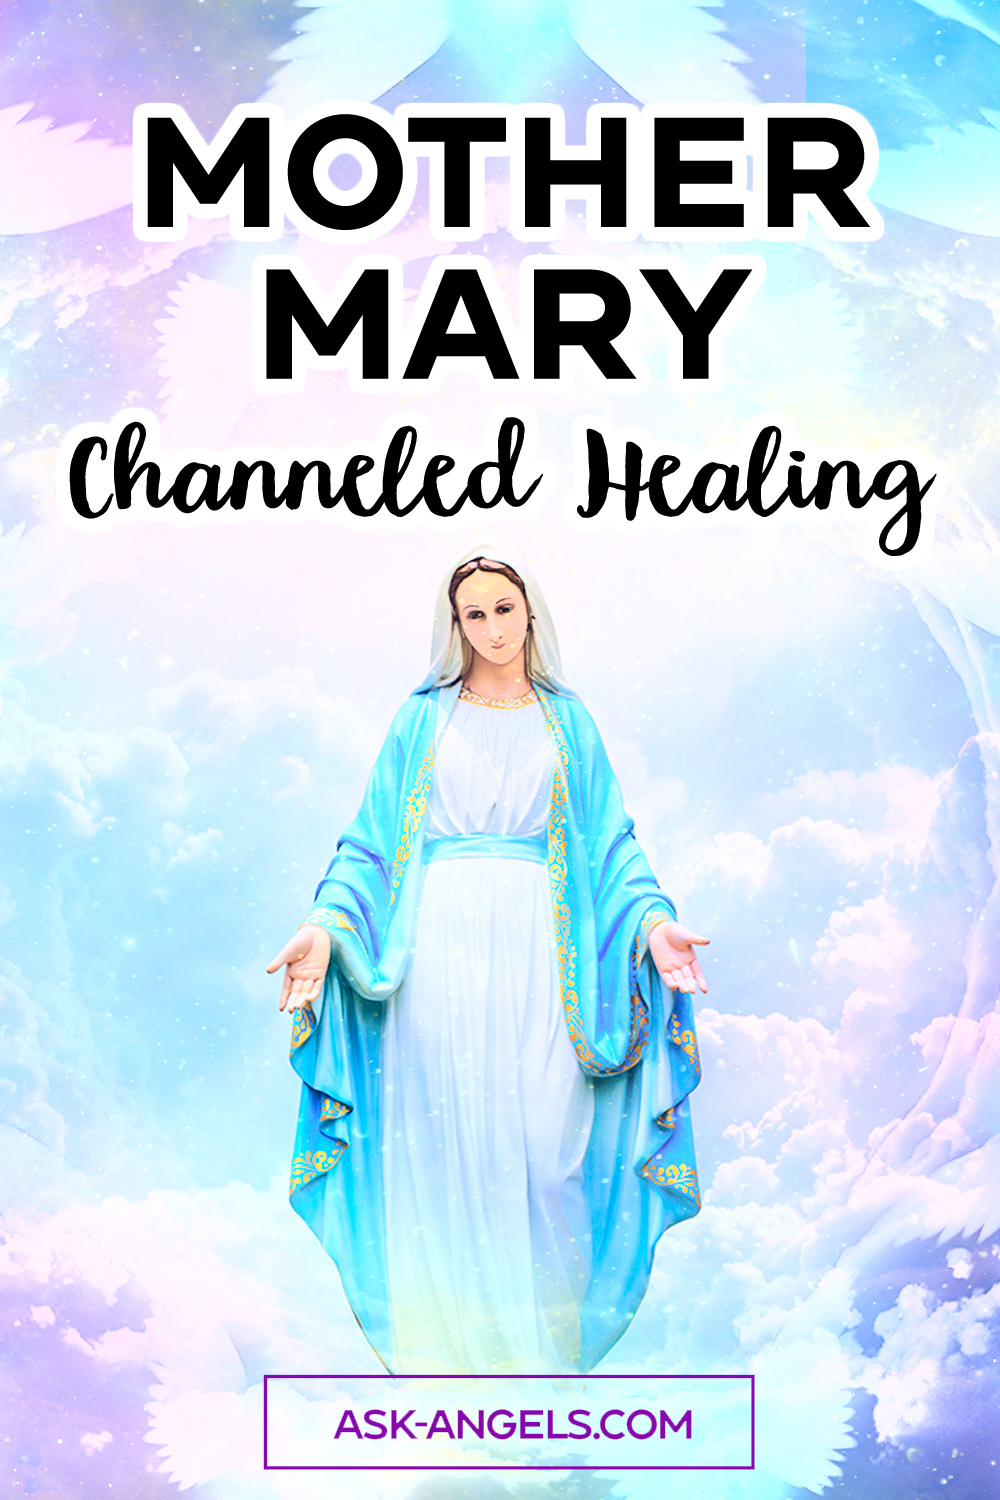 Mother Mary Channeled Healing